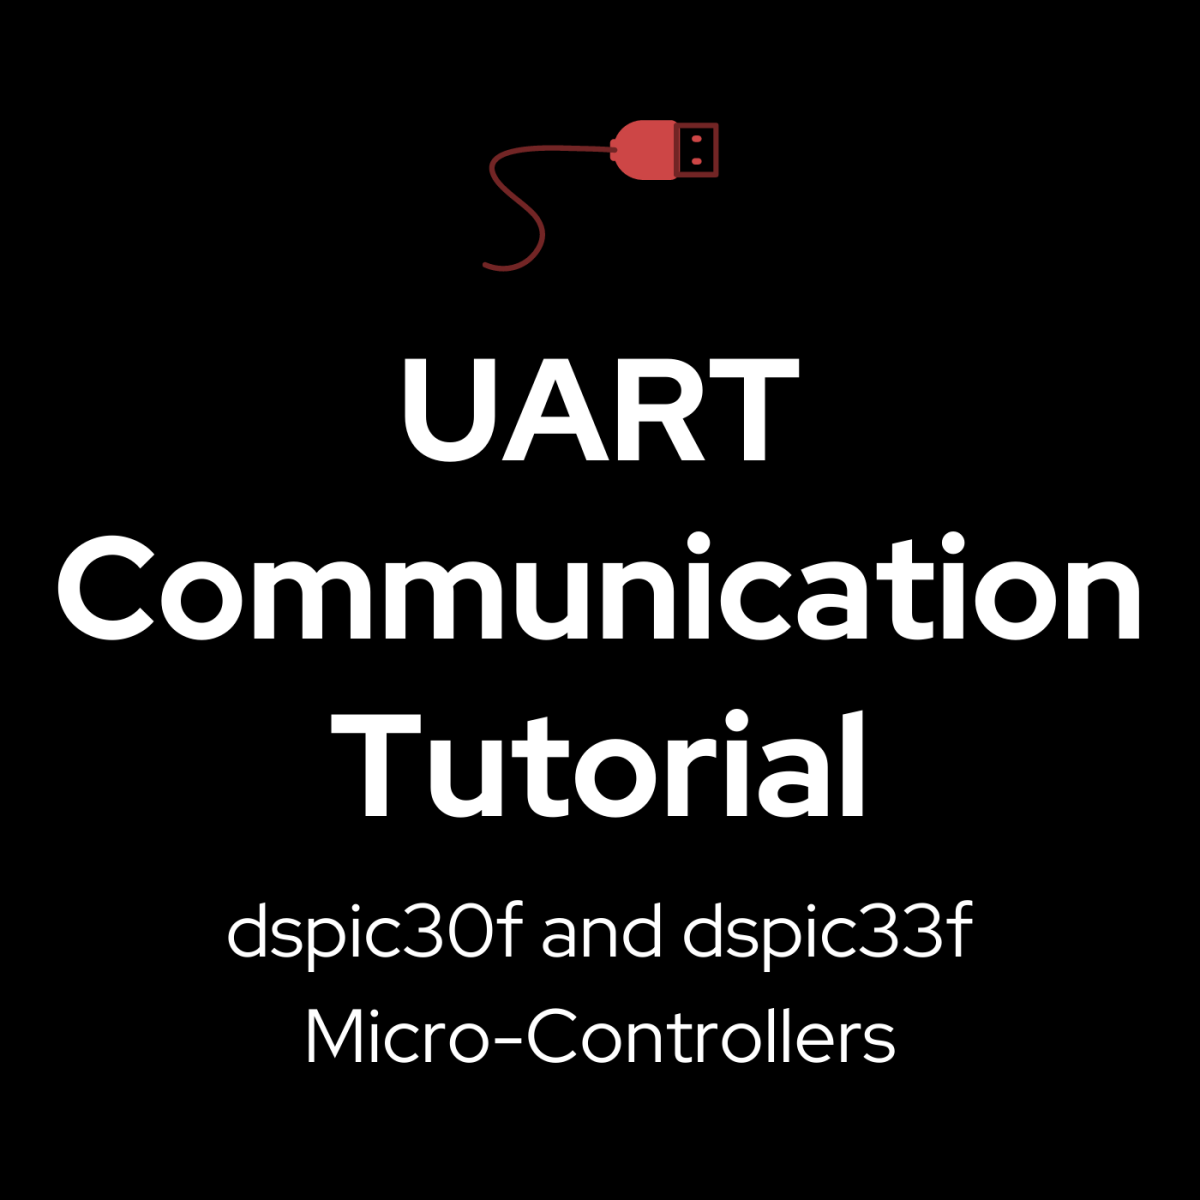 Follow along with this tutorial to learn how to establish communication between your micro-controller and PC.